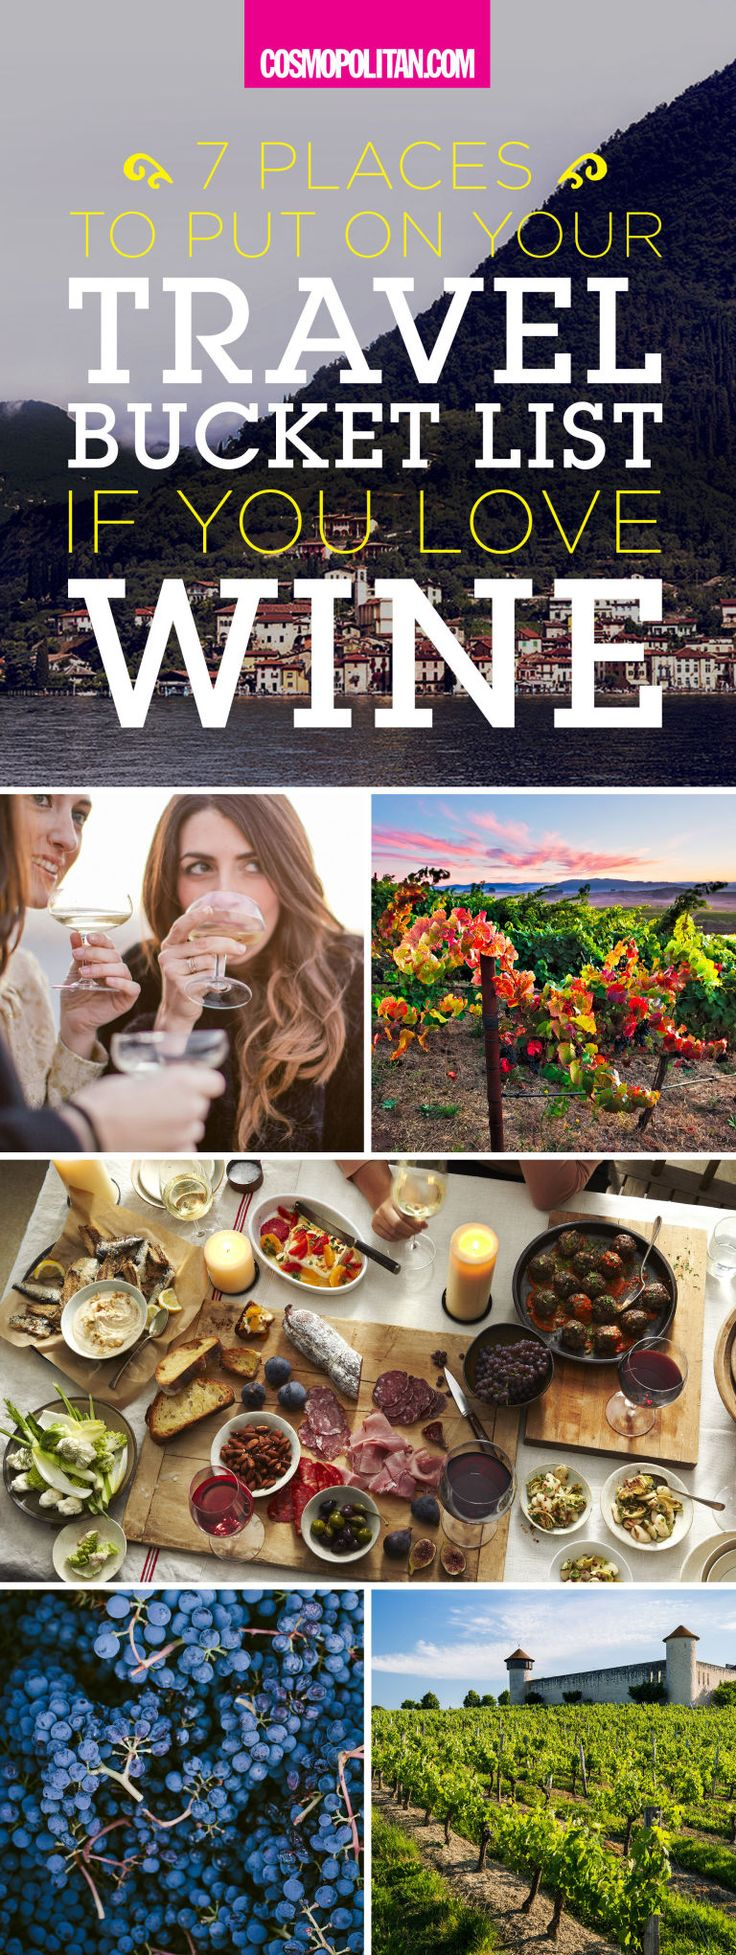 TRAVEL BUCKET LIST FOR WINE LOVERS: Satisfy your wanderlust and channel your inner wine lover with these fun and beautiful travel destinations for wine lovers. Click through to see the complete list of destinations in the United States, France, Italy, Mexico, and more — plus, you'll find the best travel tips and recommendations for these destinations including the wines to try, winemakers to visit, what to do while you're there, when to go, and more. Click through to see the complete travel…